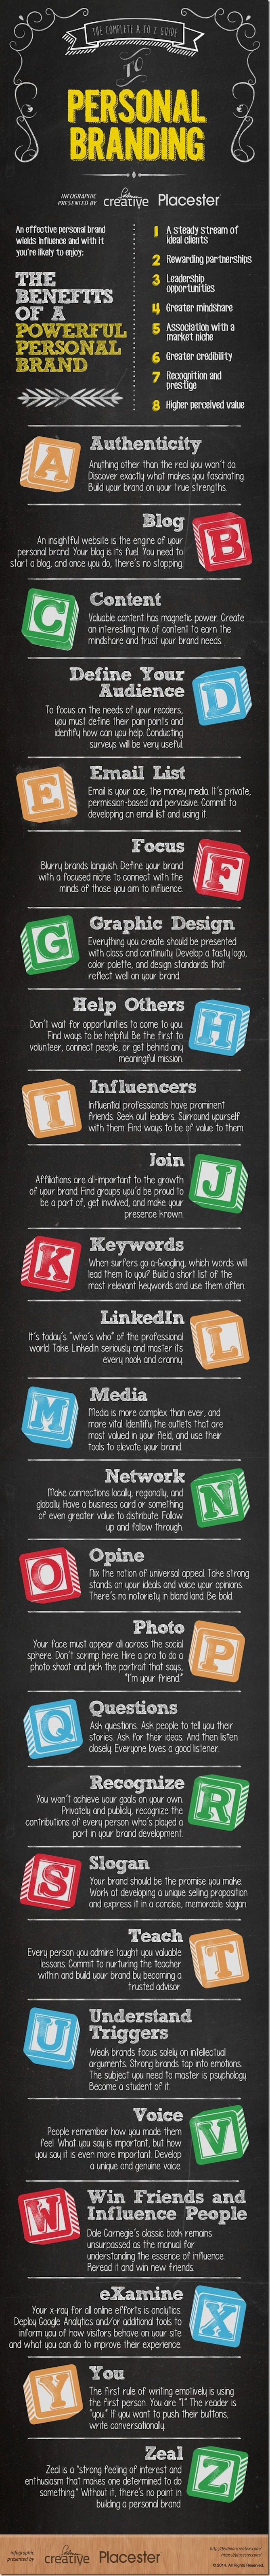 the-complete-a-to-z-guide-to-personal-branding-full_thumb